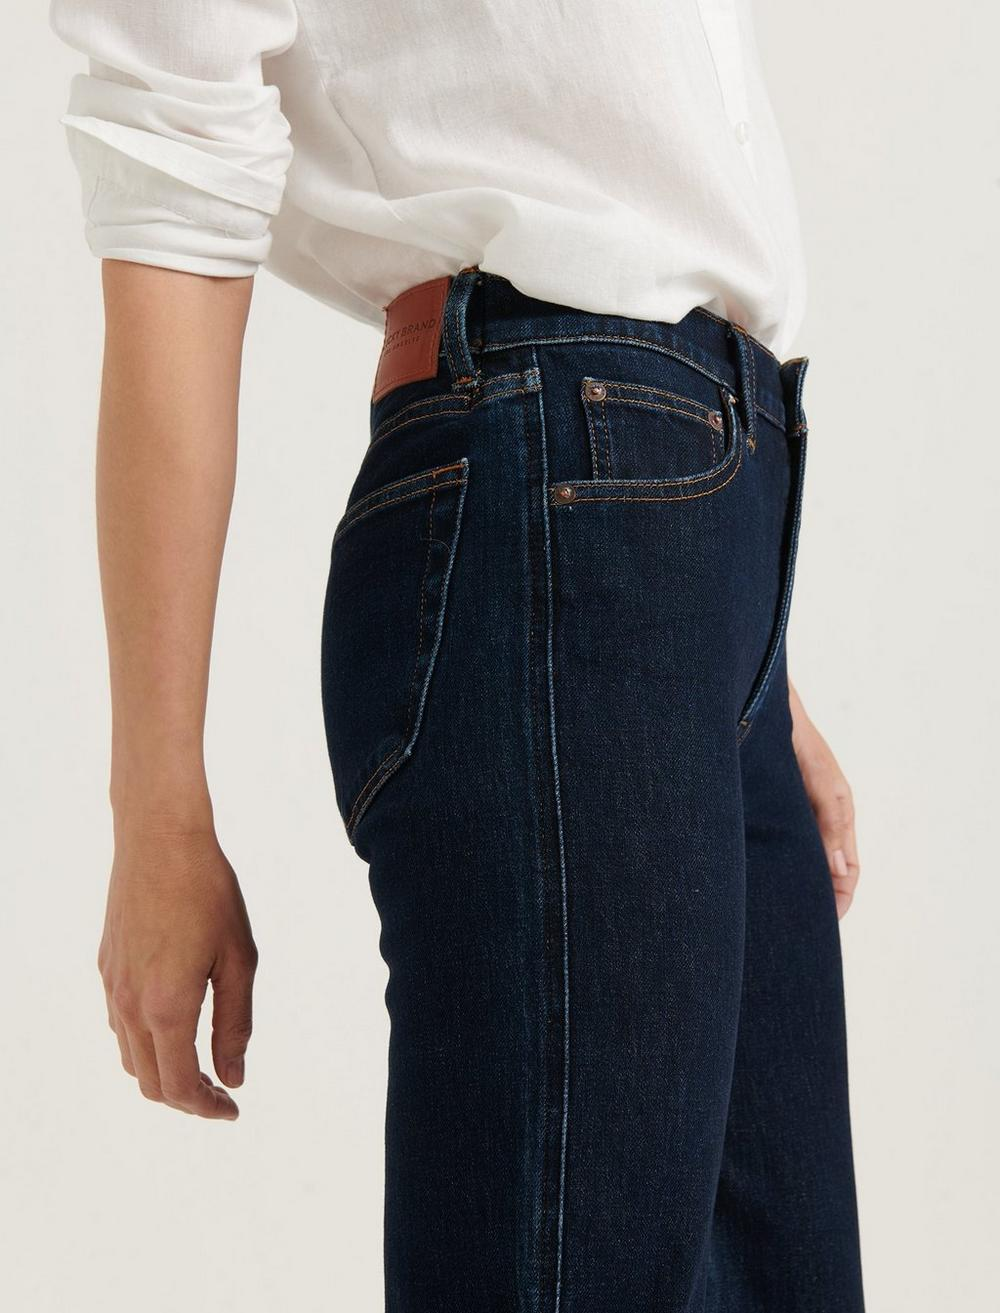 MID RISE AUTHENTIC STRAIGHT JEAN, image 4